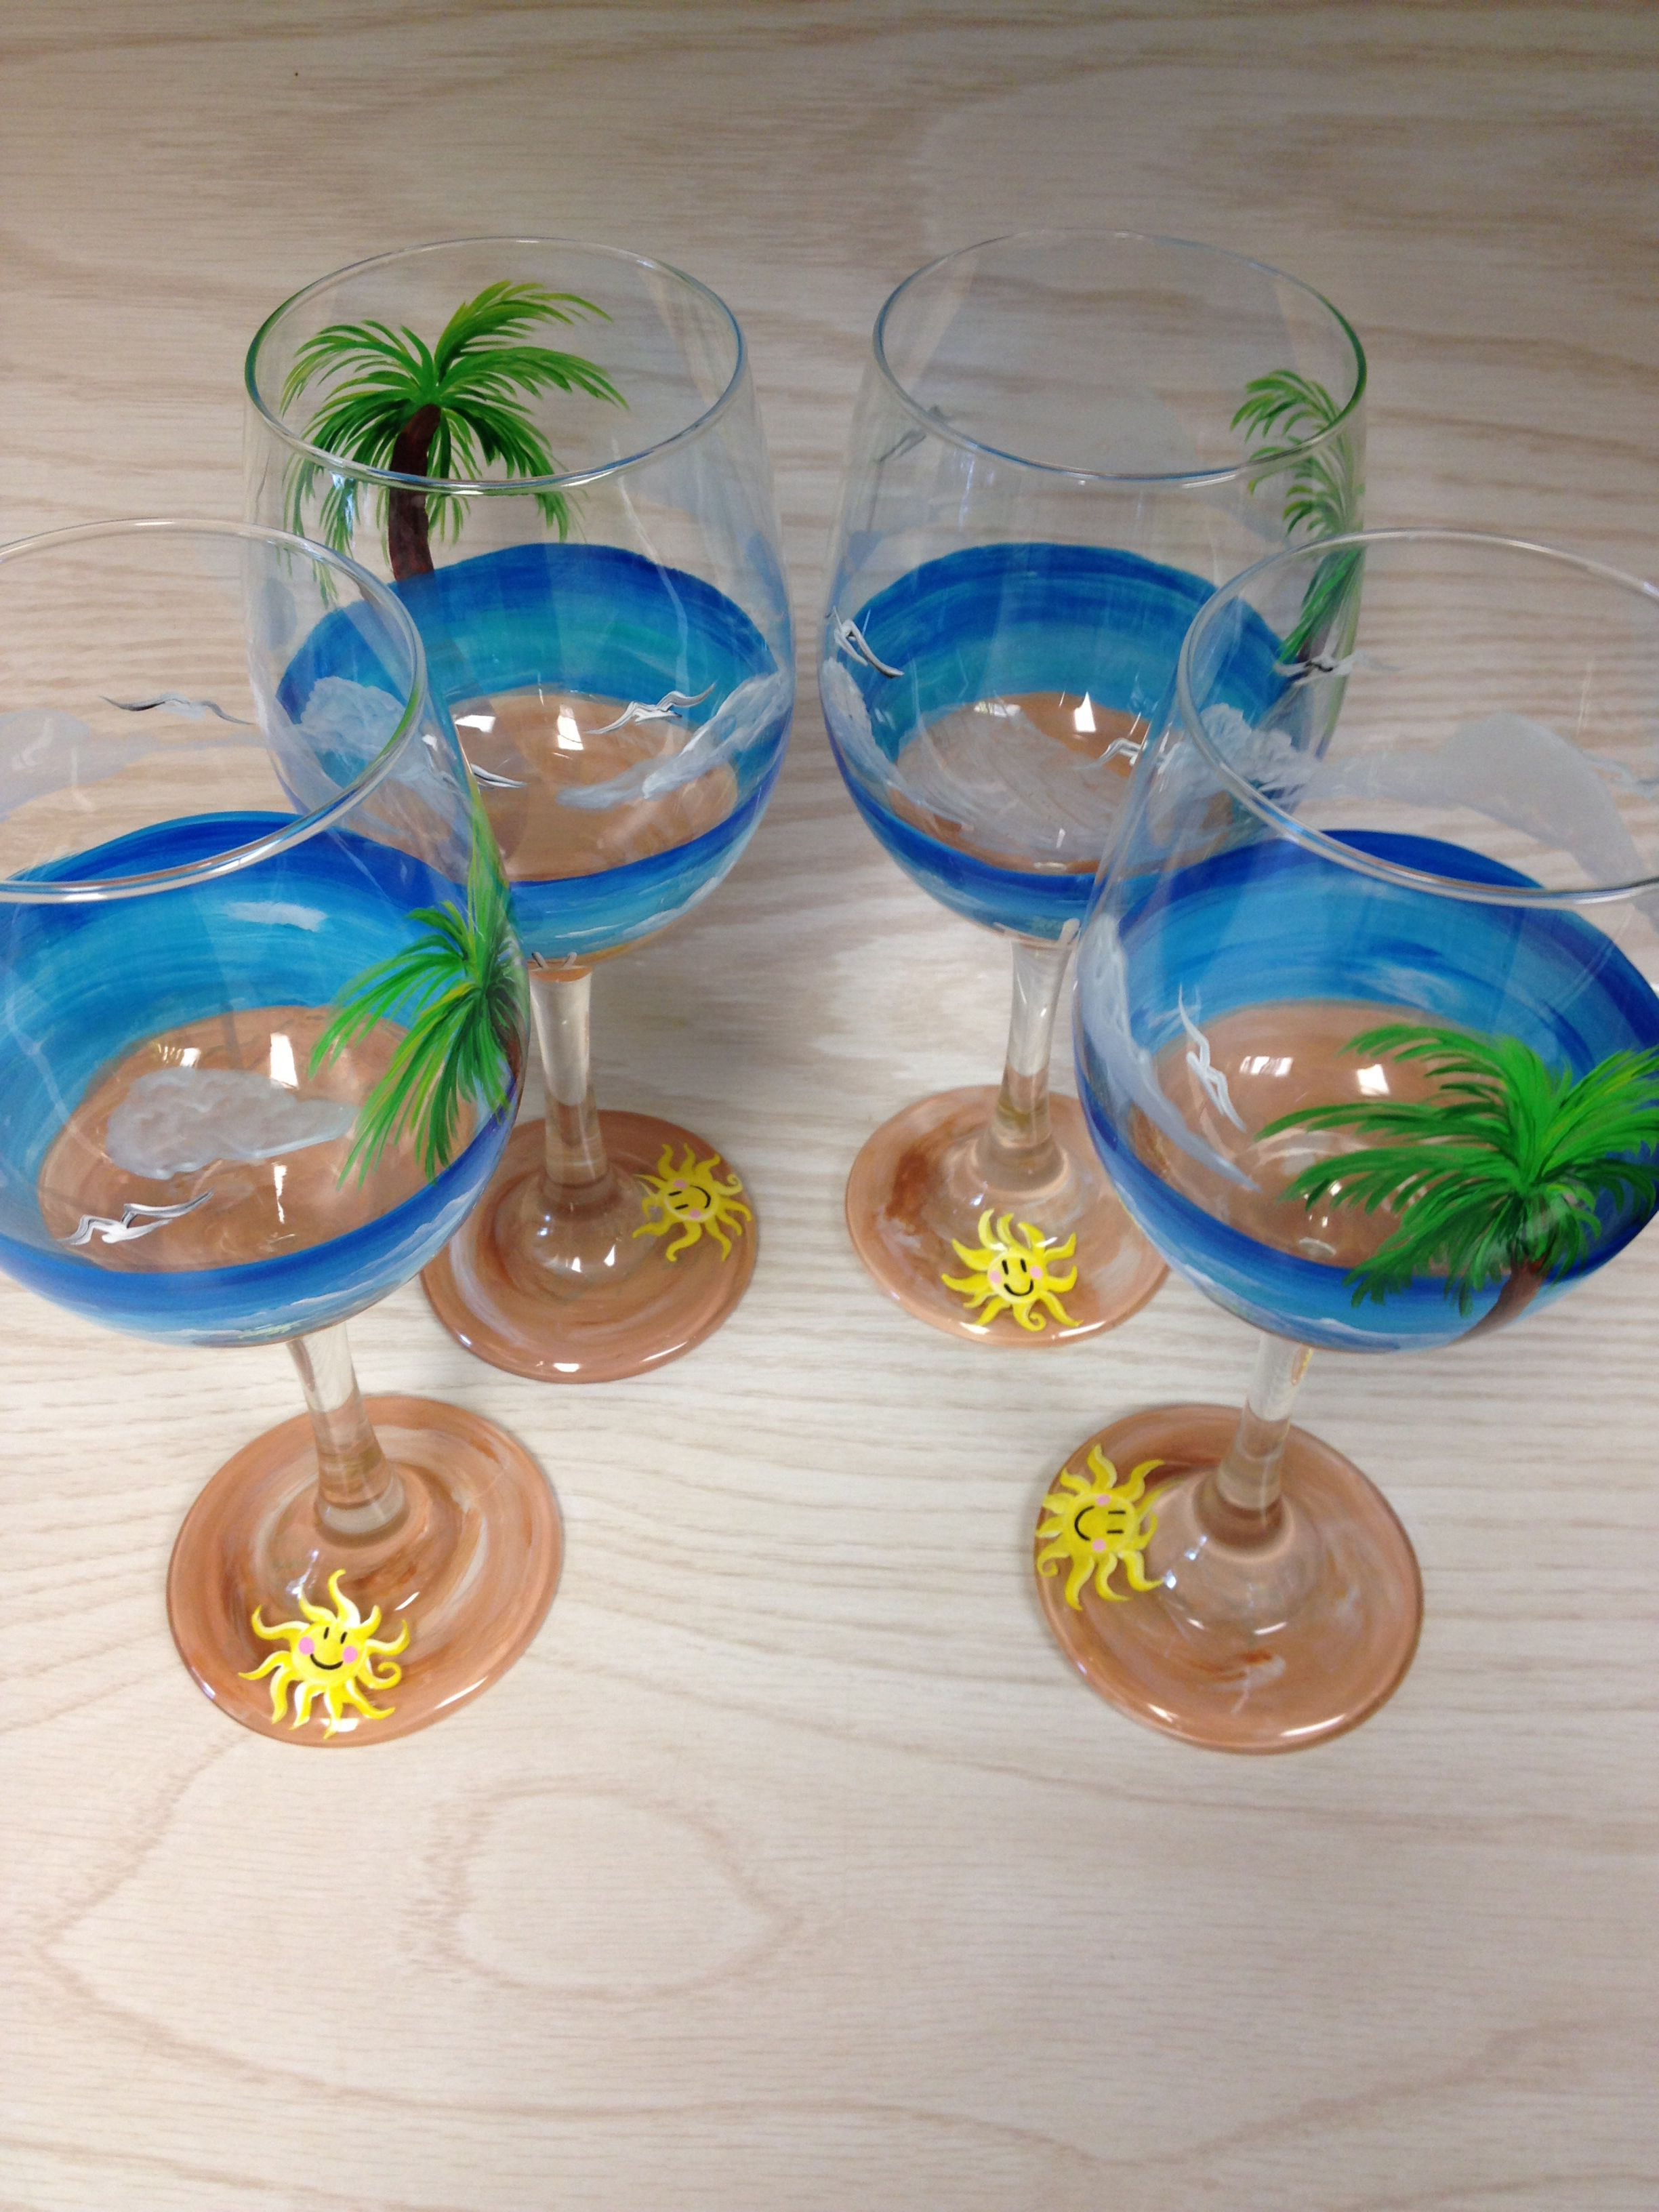 A guided wine glass painting class is a fun activity for